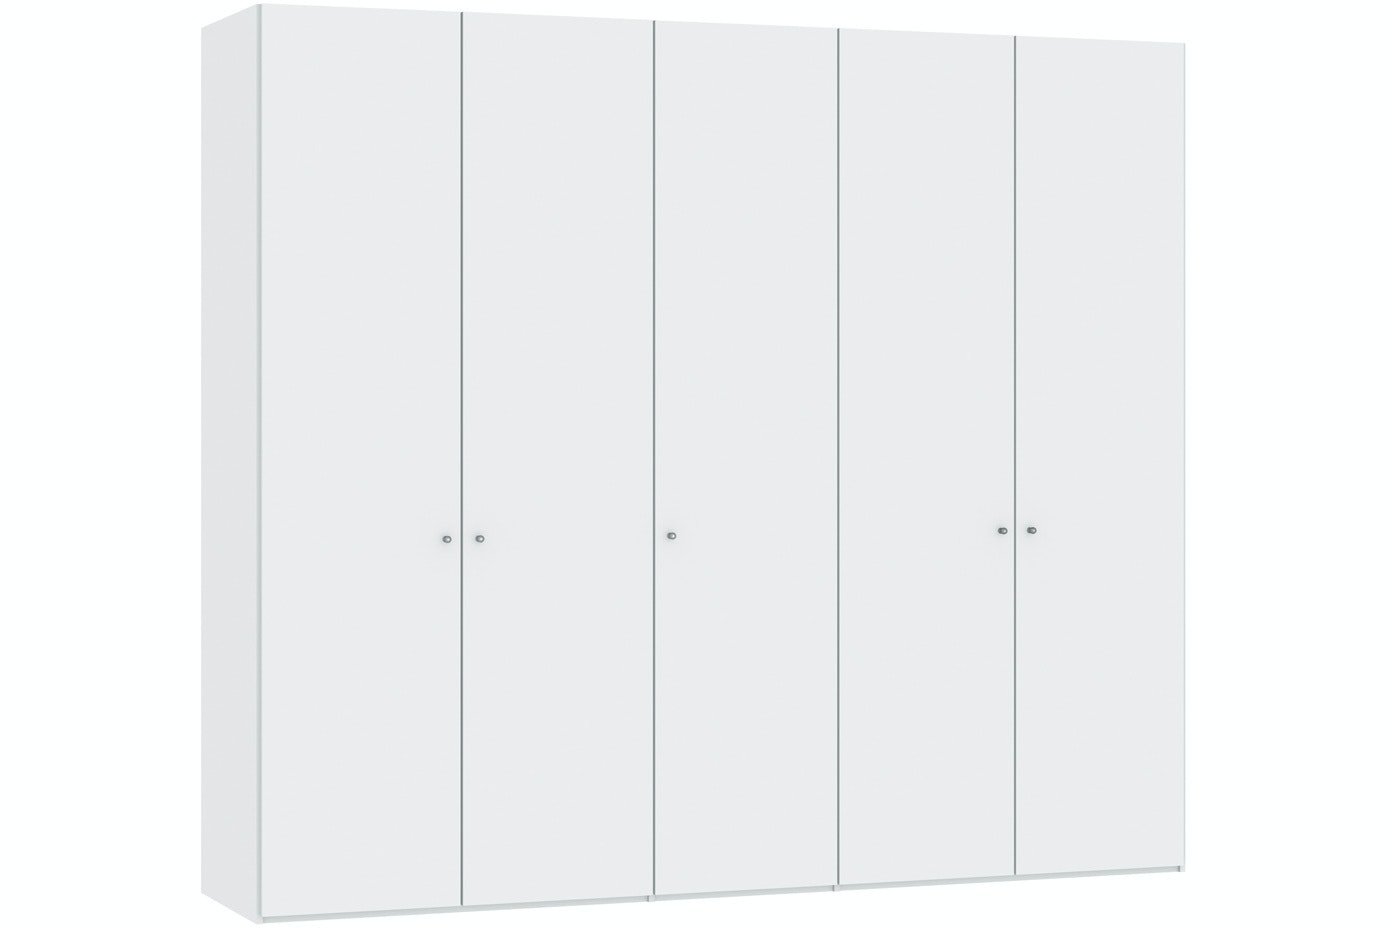 Jutzler Meggan Longline 5 Door Wardrobe | White Glass Matte